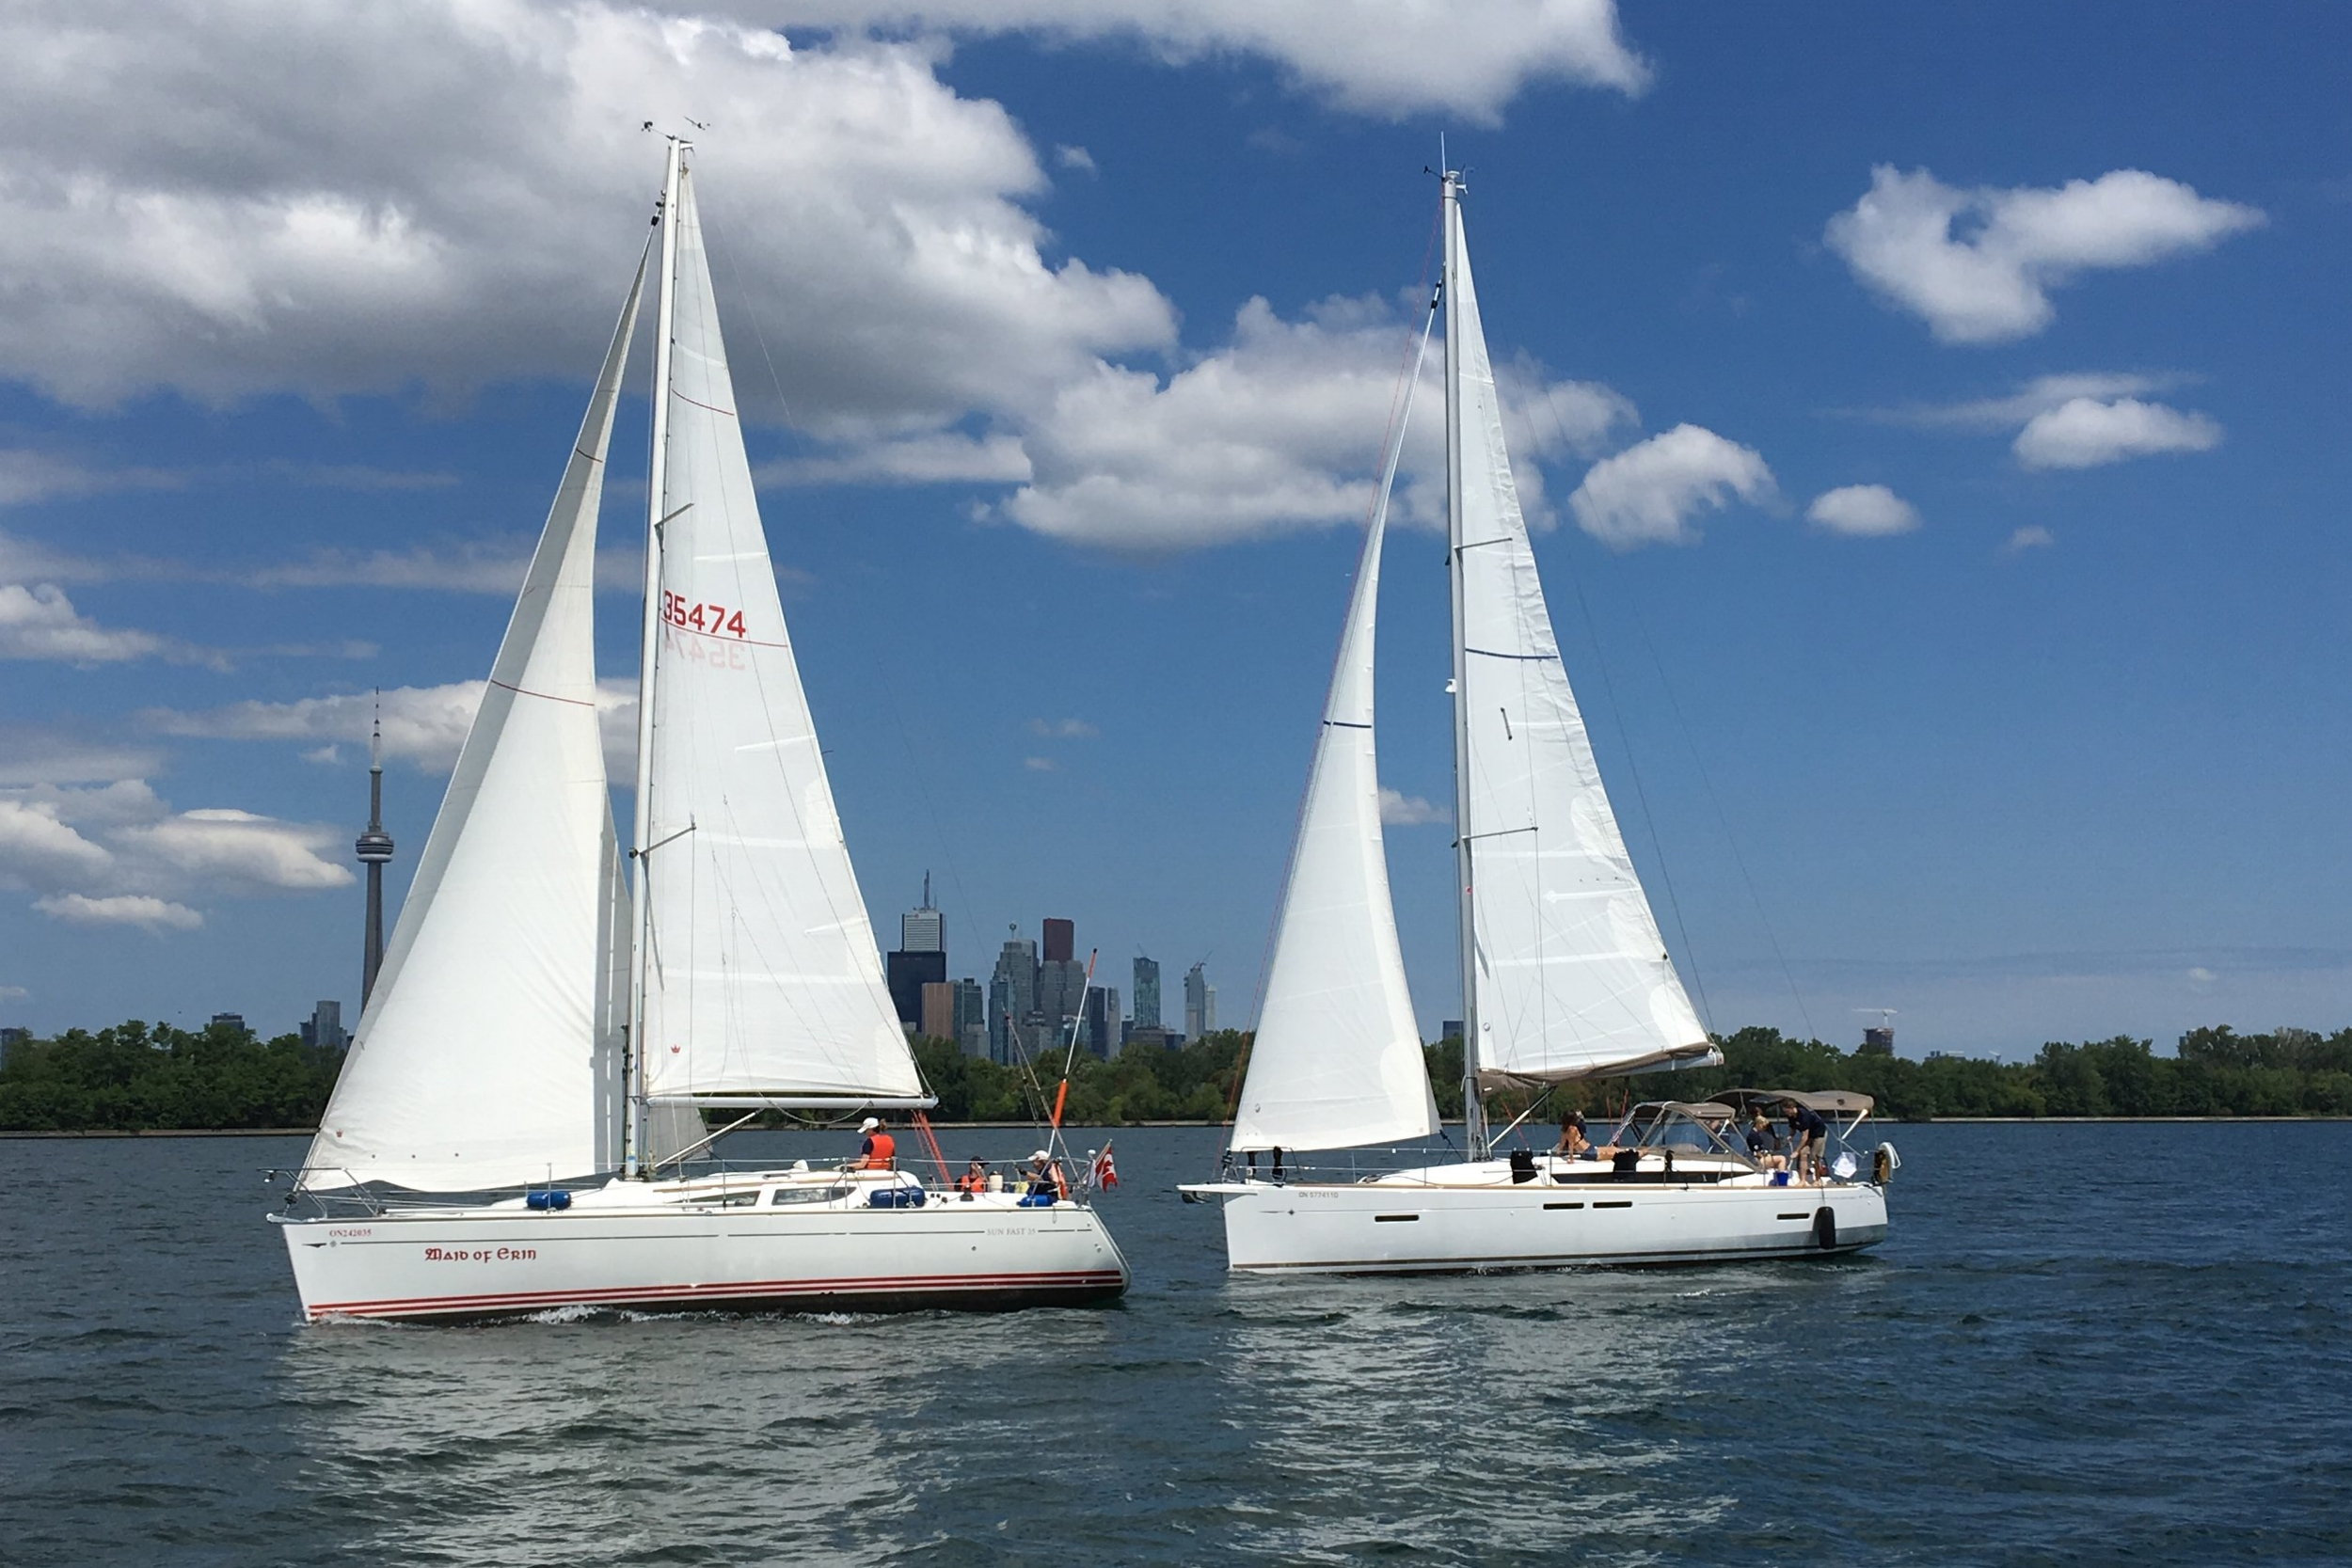 SUMMER Rendezvous Schedule - It is time to hoist your sails! Jeanneau Dealers all around North America are planning their Jeanneau Owners Summer Rendezvous. Mark your calendars!